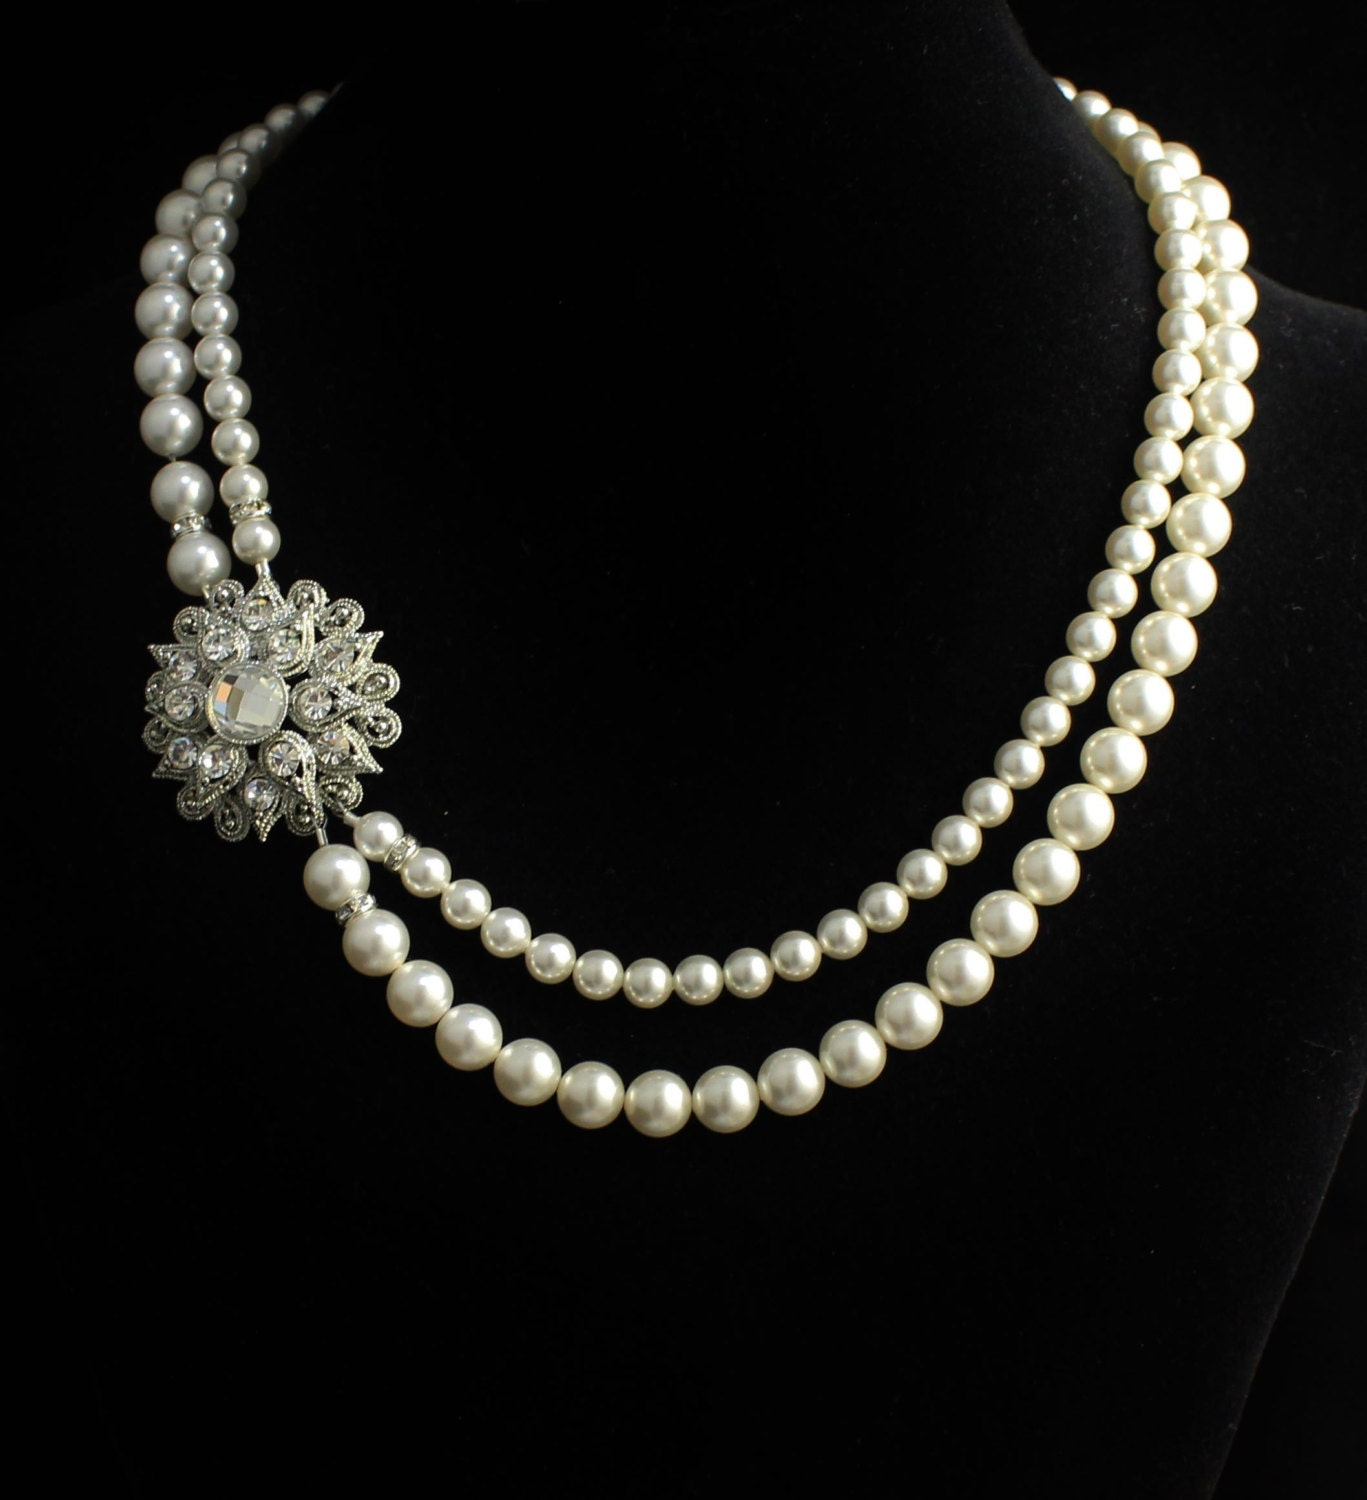 Indiangoldesigns Com Beautiful Antique Bridal Necklace: Items Similar To Custom Bridal Order For Brittany R On Etsy